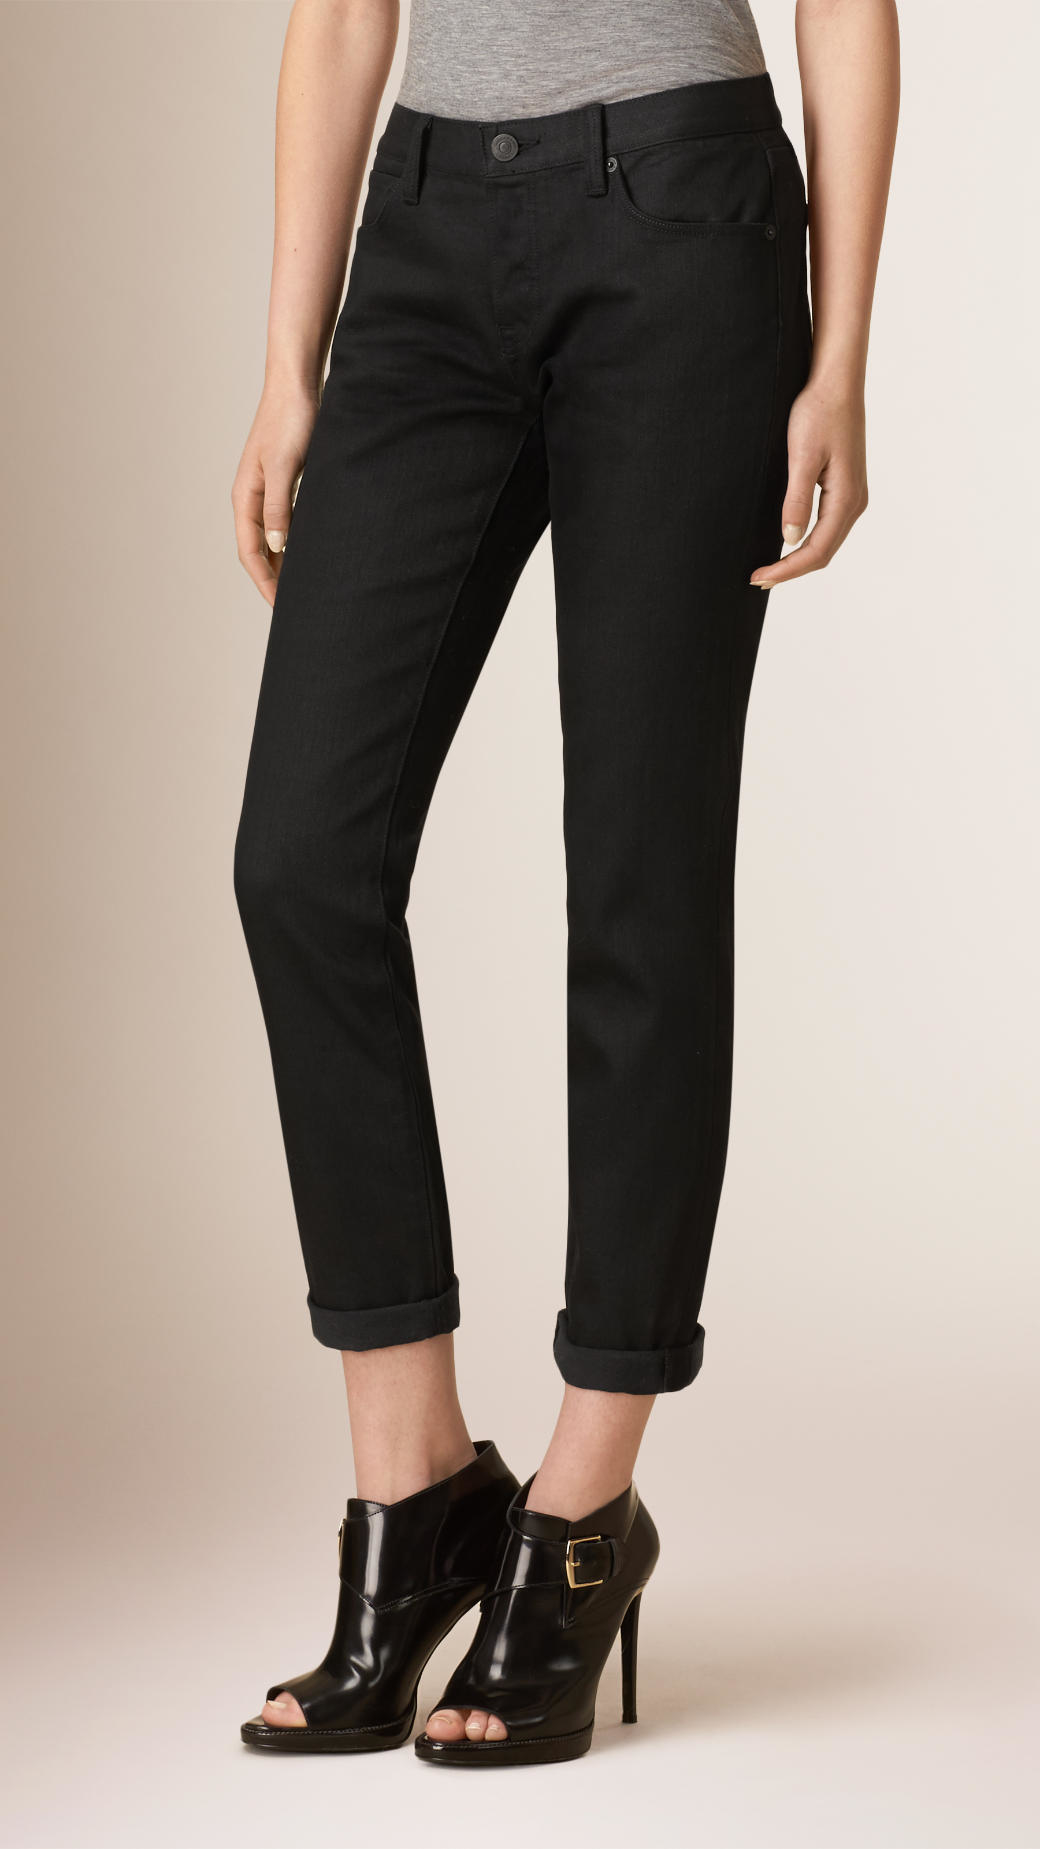 6e83c2cea1001 Lyst - Burberry Slim Fit Cropped Deep Black Jeans in Black